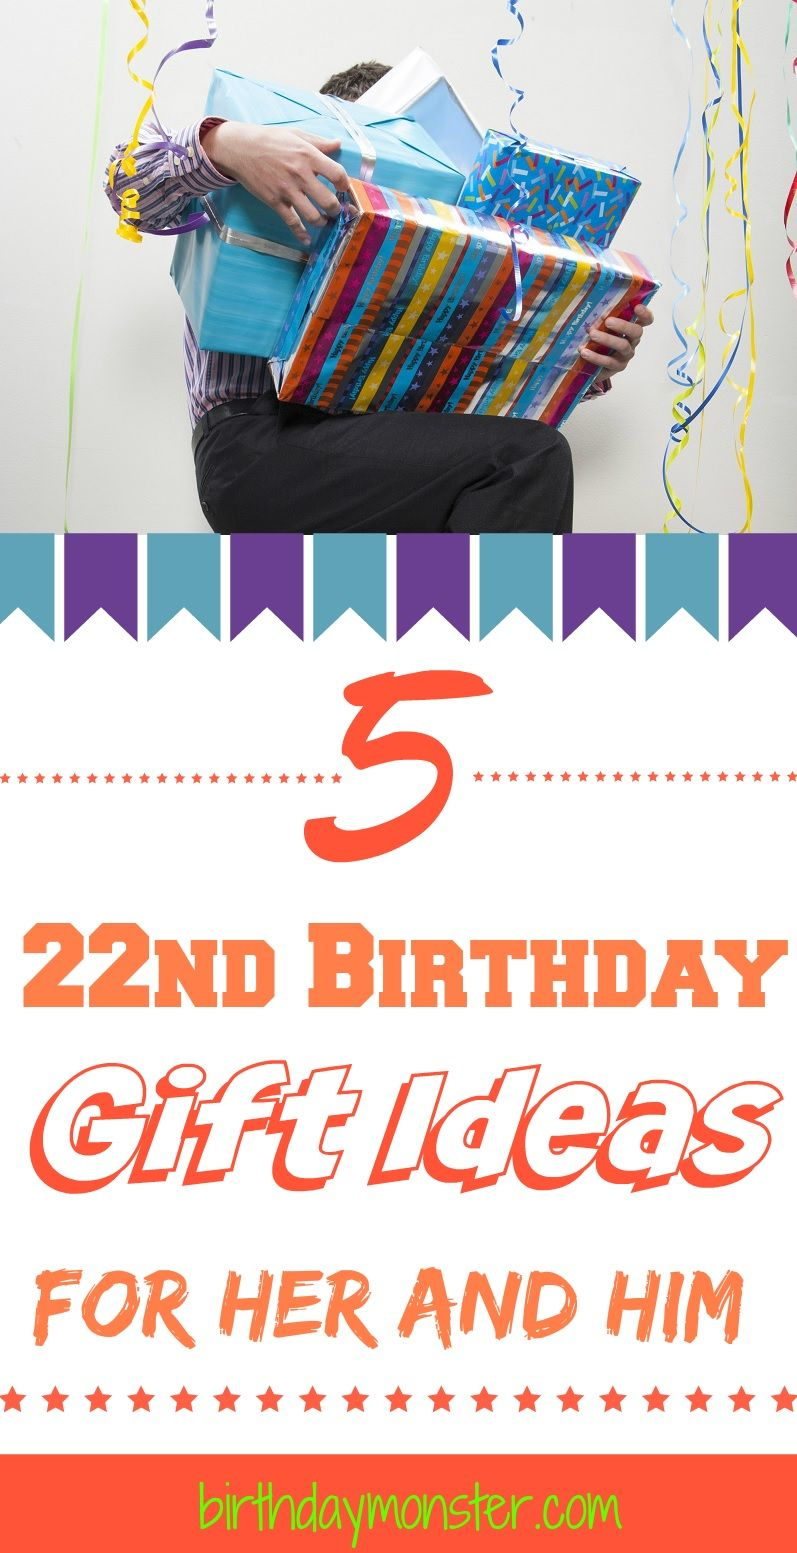 22nd birthday gift ideas for her and him what makes a good birthday